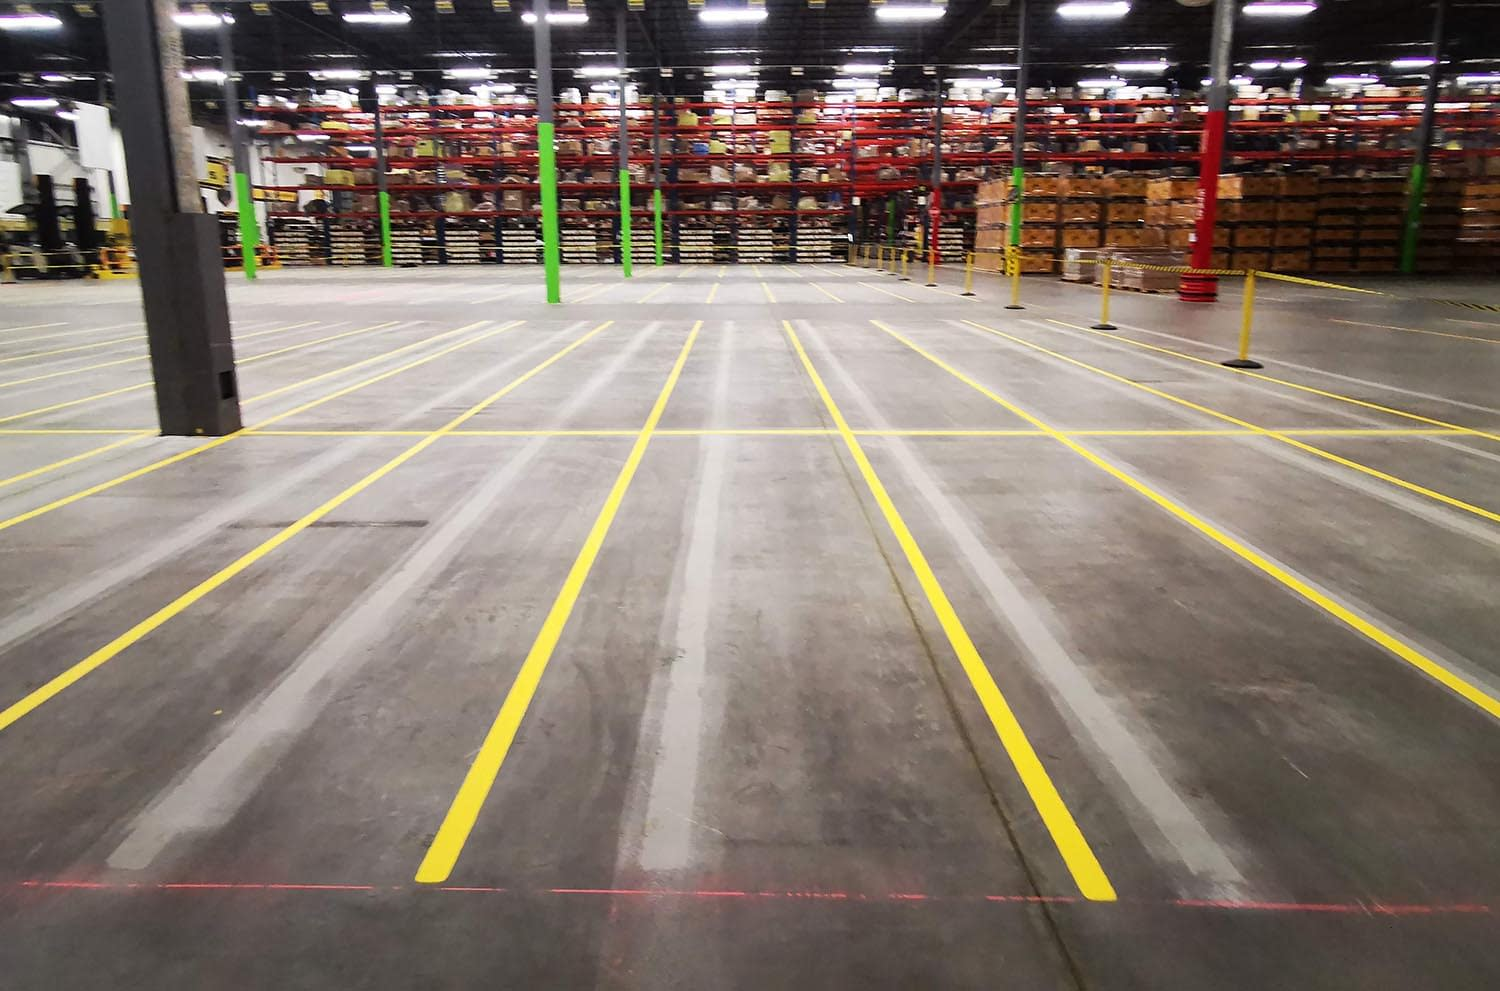 painted warehouse pallet lines